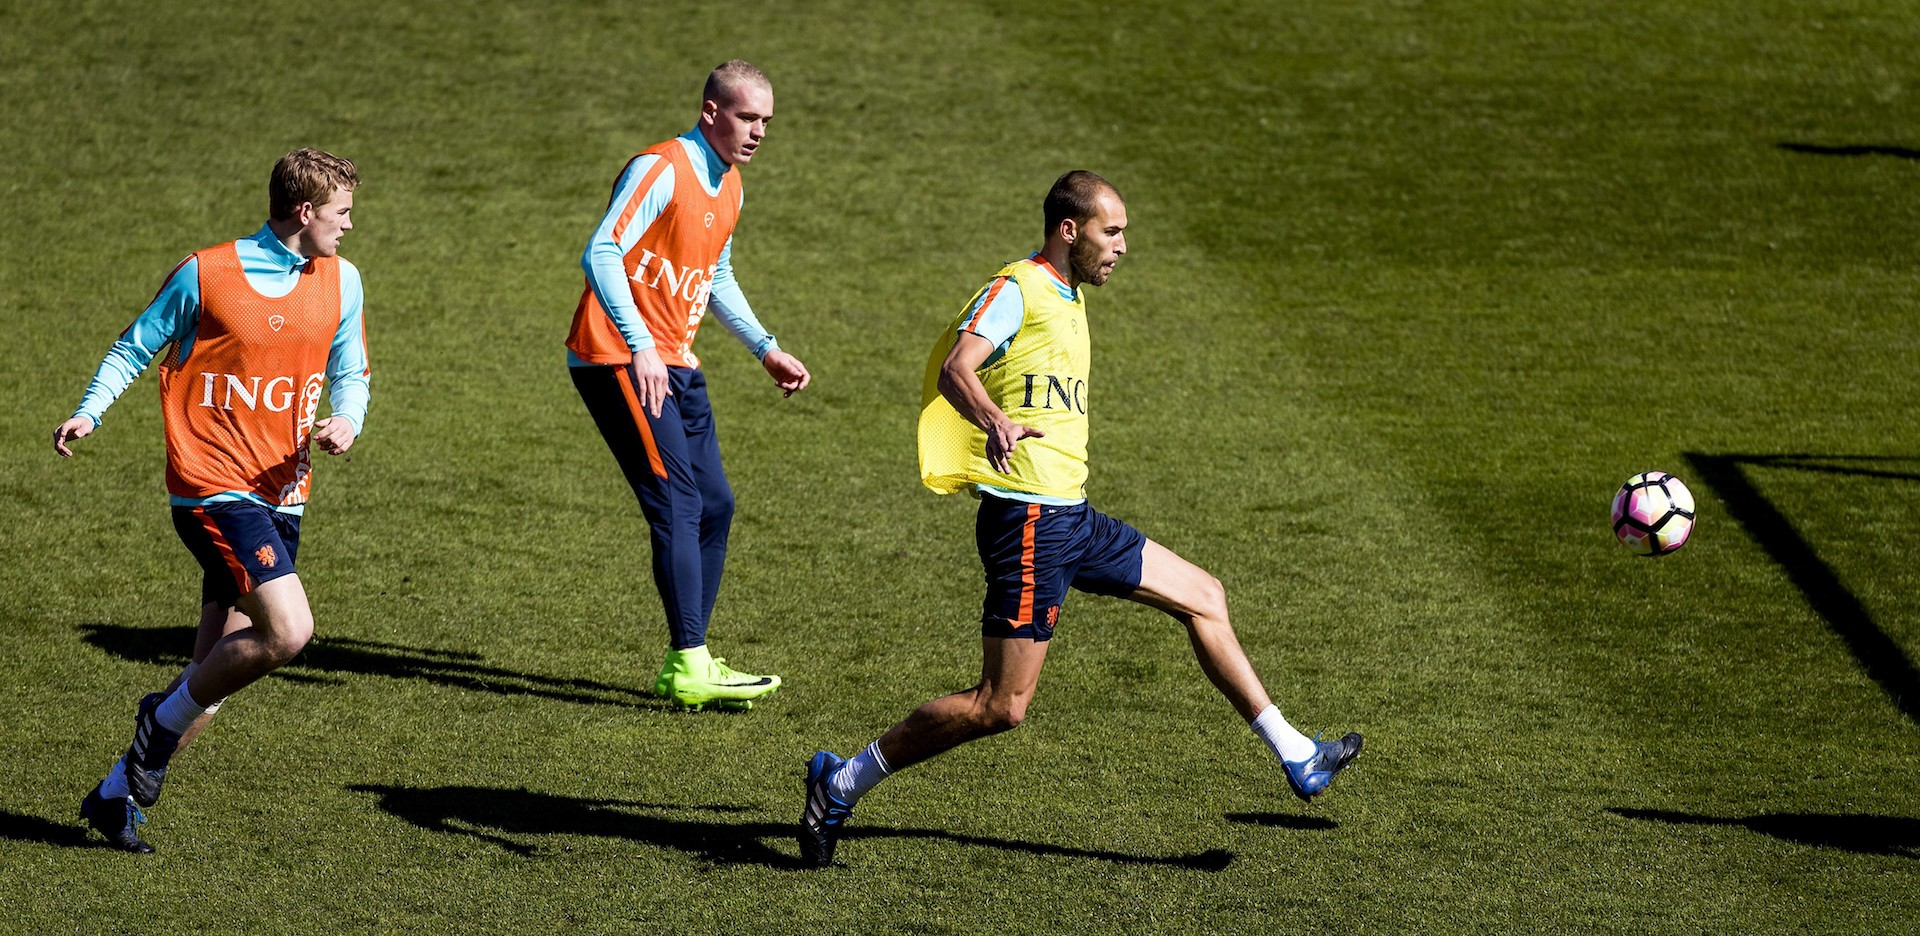 Dutch national players Matthijs de Ligt, Rick Karsdorp and Bas Dost practice during a training session ahead of the friendly football match Netherland vs Italy in Alkmaar, on March 27, 2017. / AFP PHOTO / ANP / Koen van Weel / Netherlands OUT (Photo credit should read KOEN VAN WEEL/AFP/Getty Images)